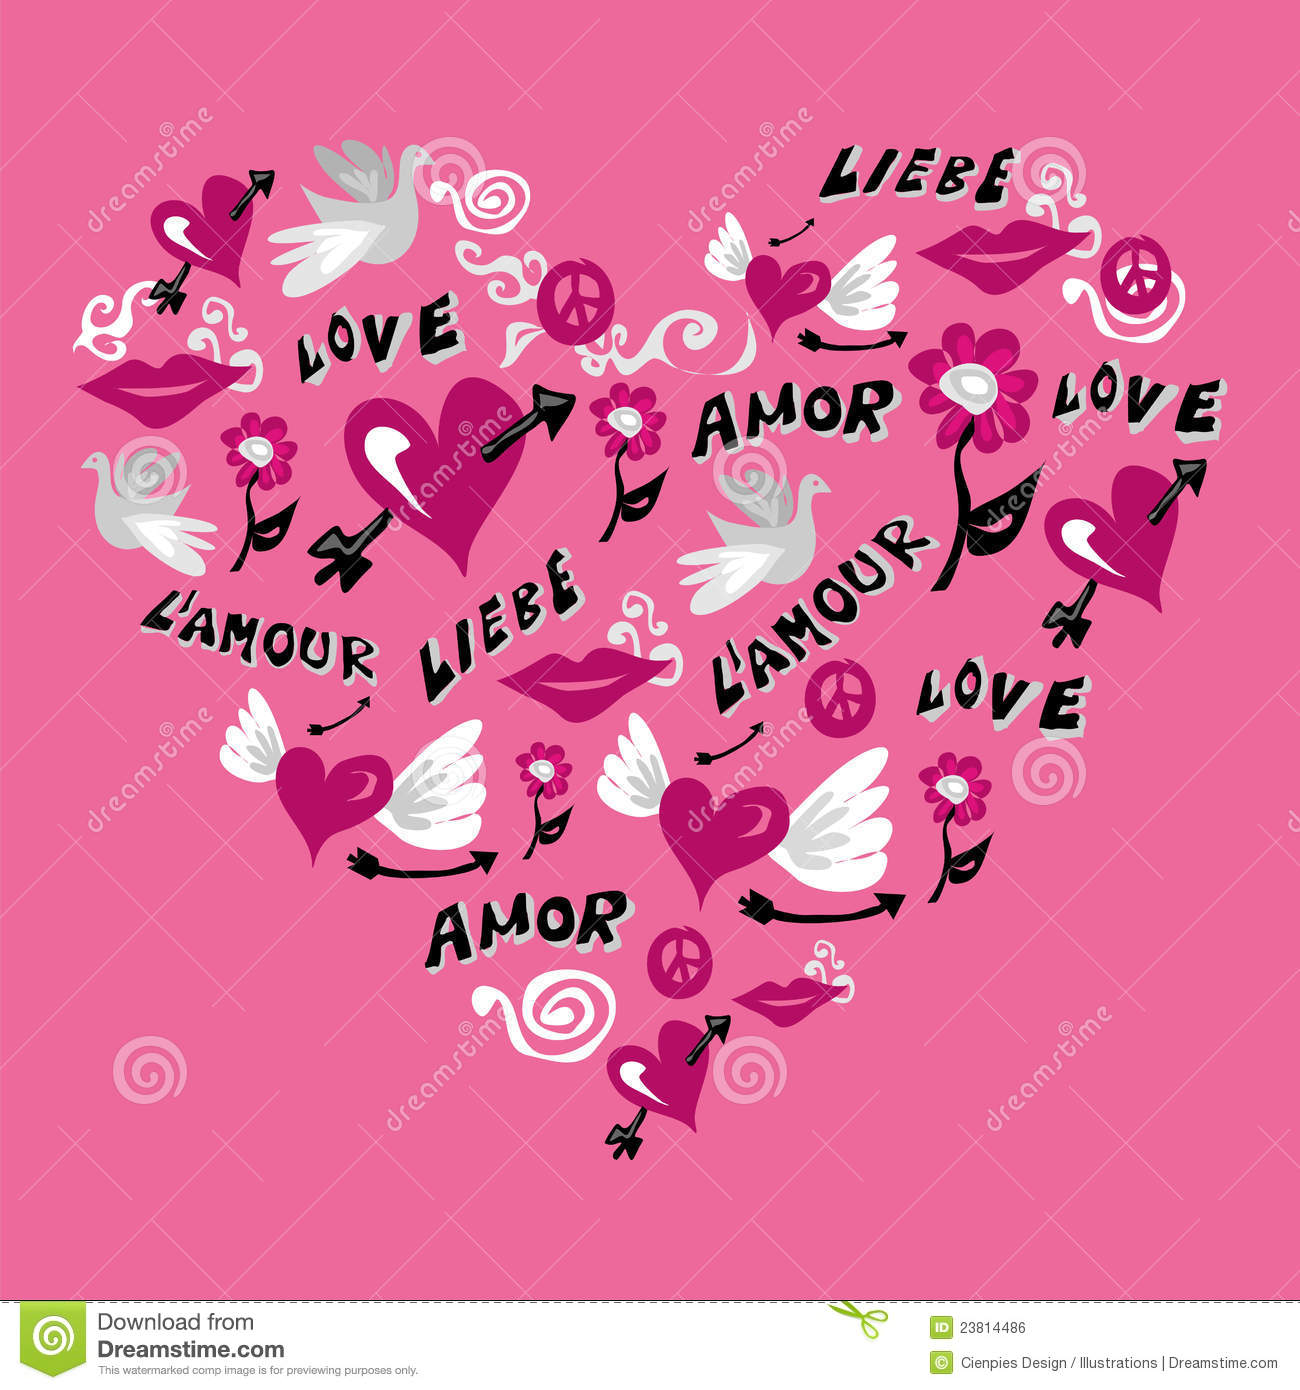 Love symbols in heart shape stock vector illustration of love symbols in heart shape buycottarizona Image collections